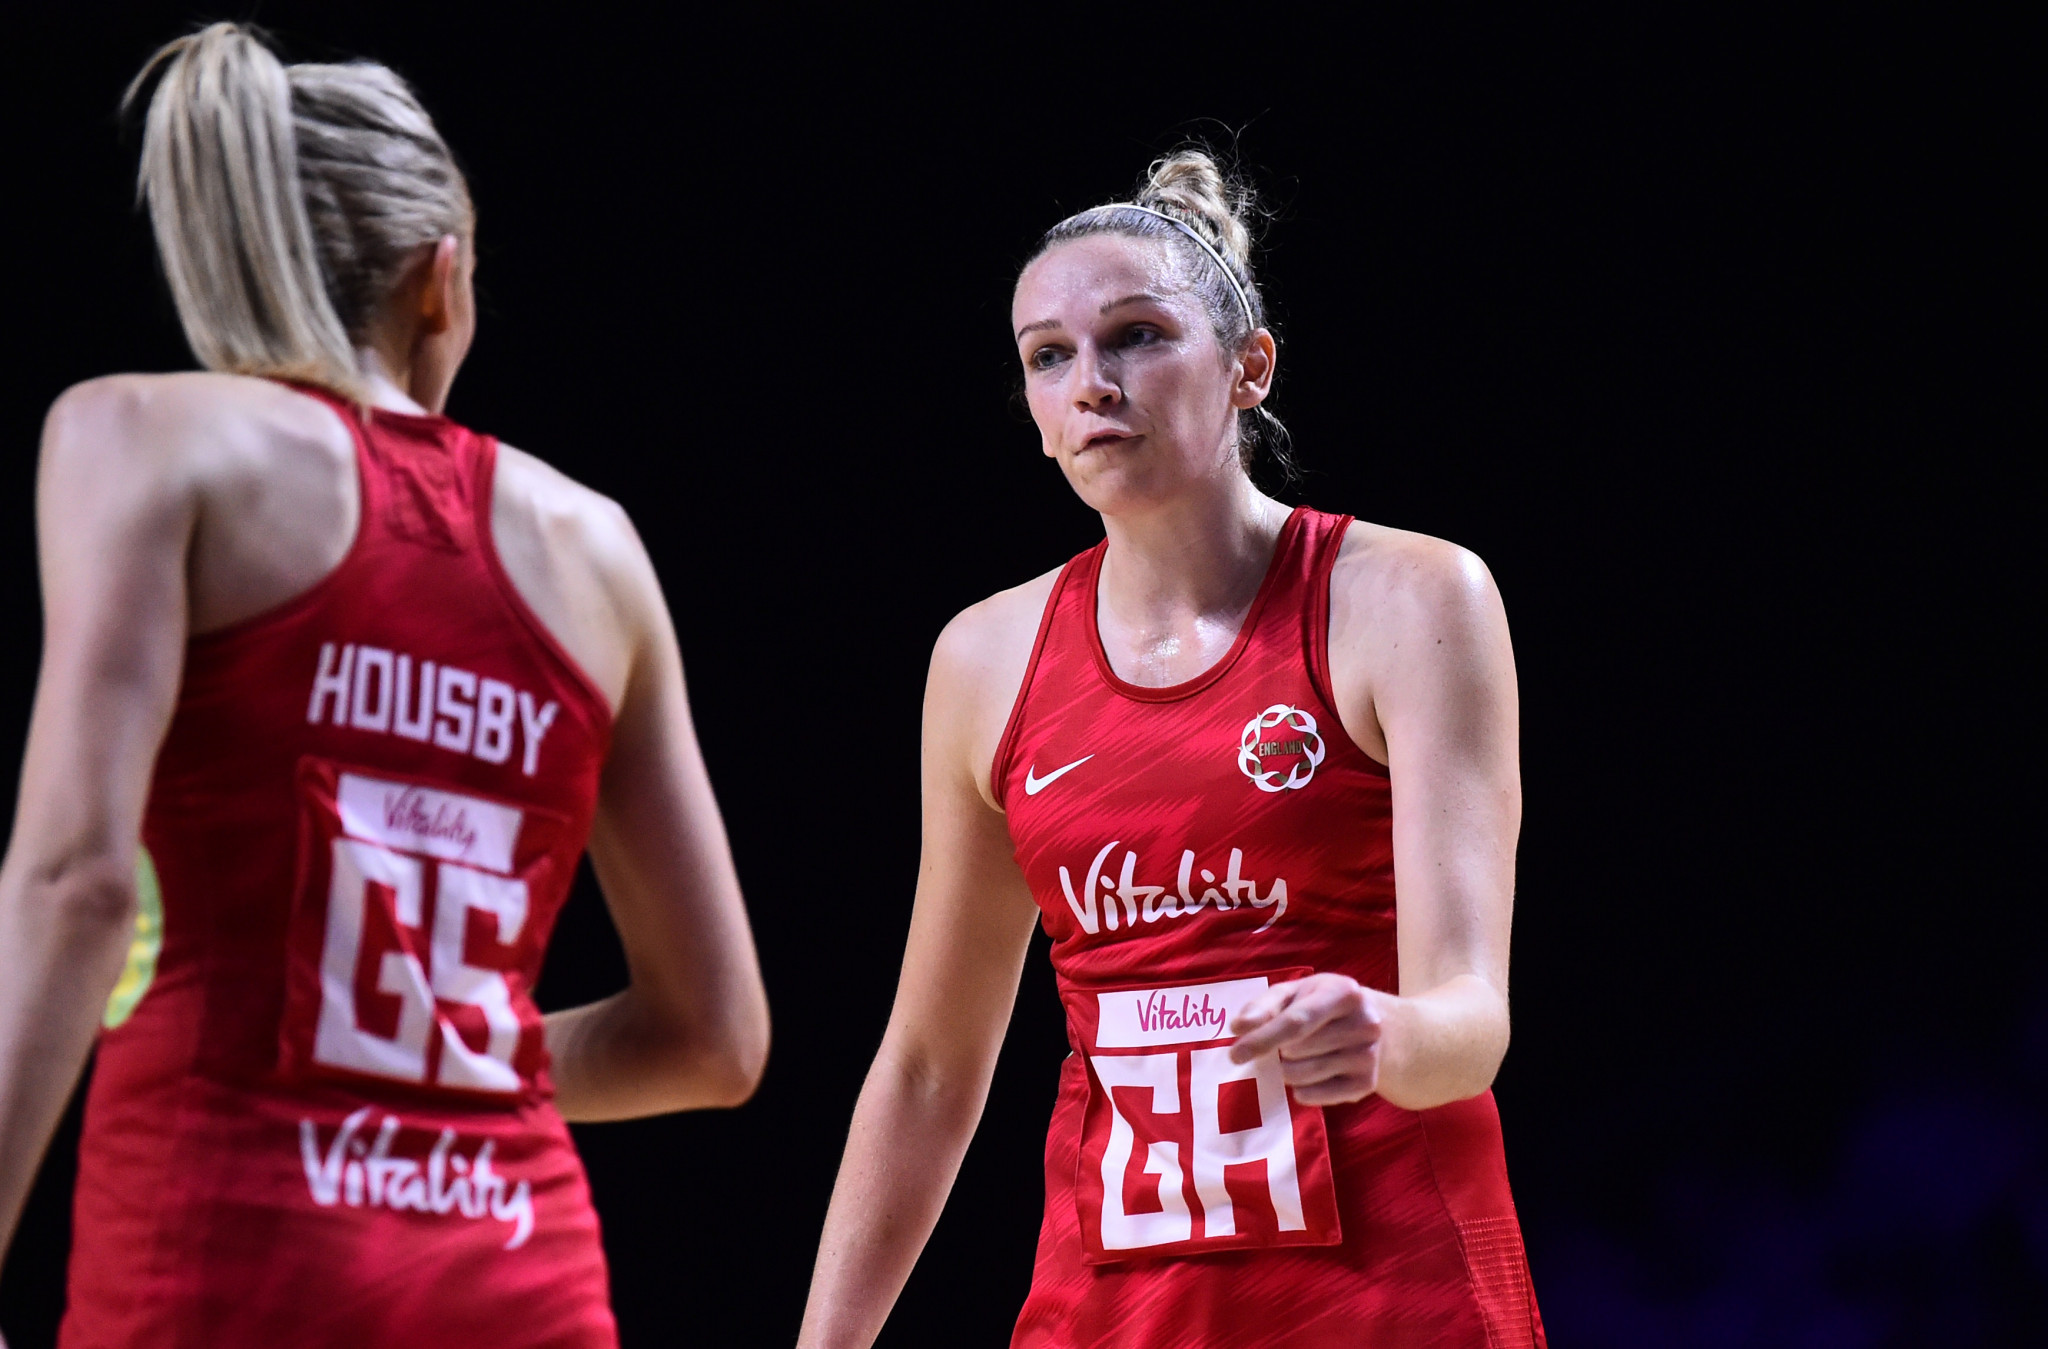 England climb back to third in latest International Netball Federation rankings